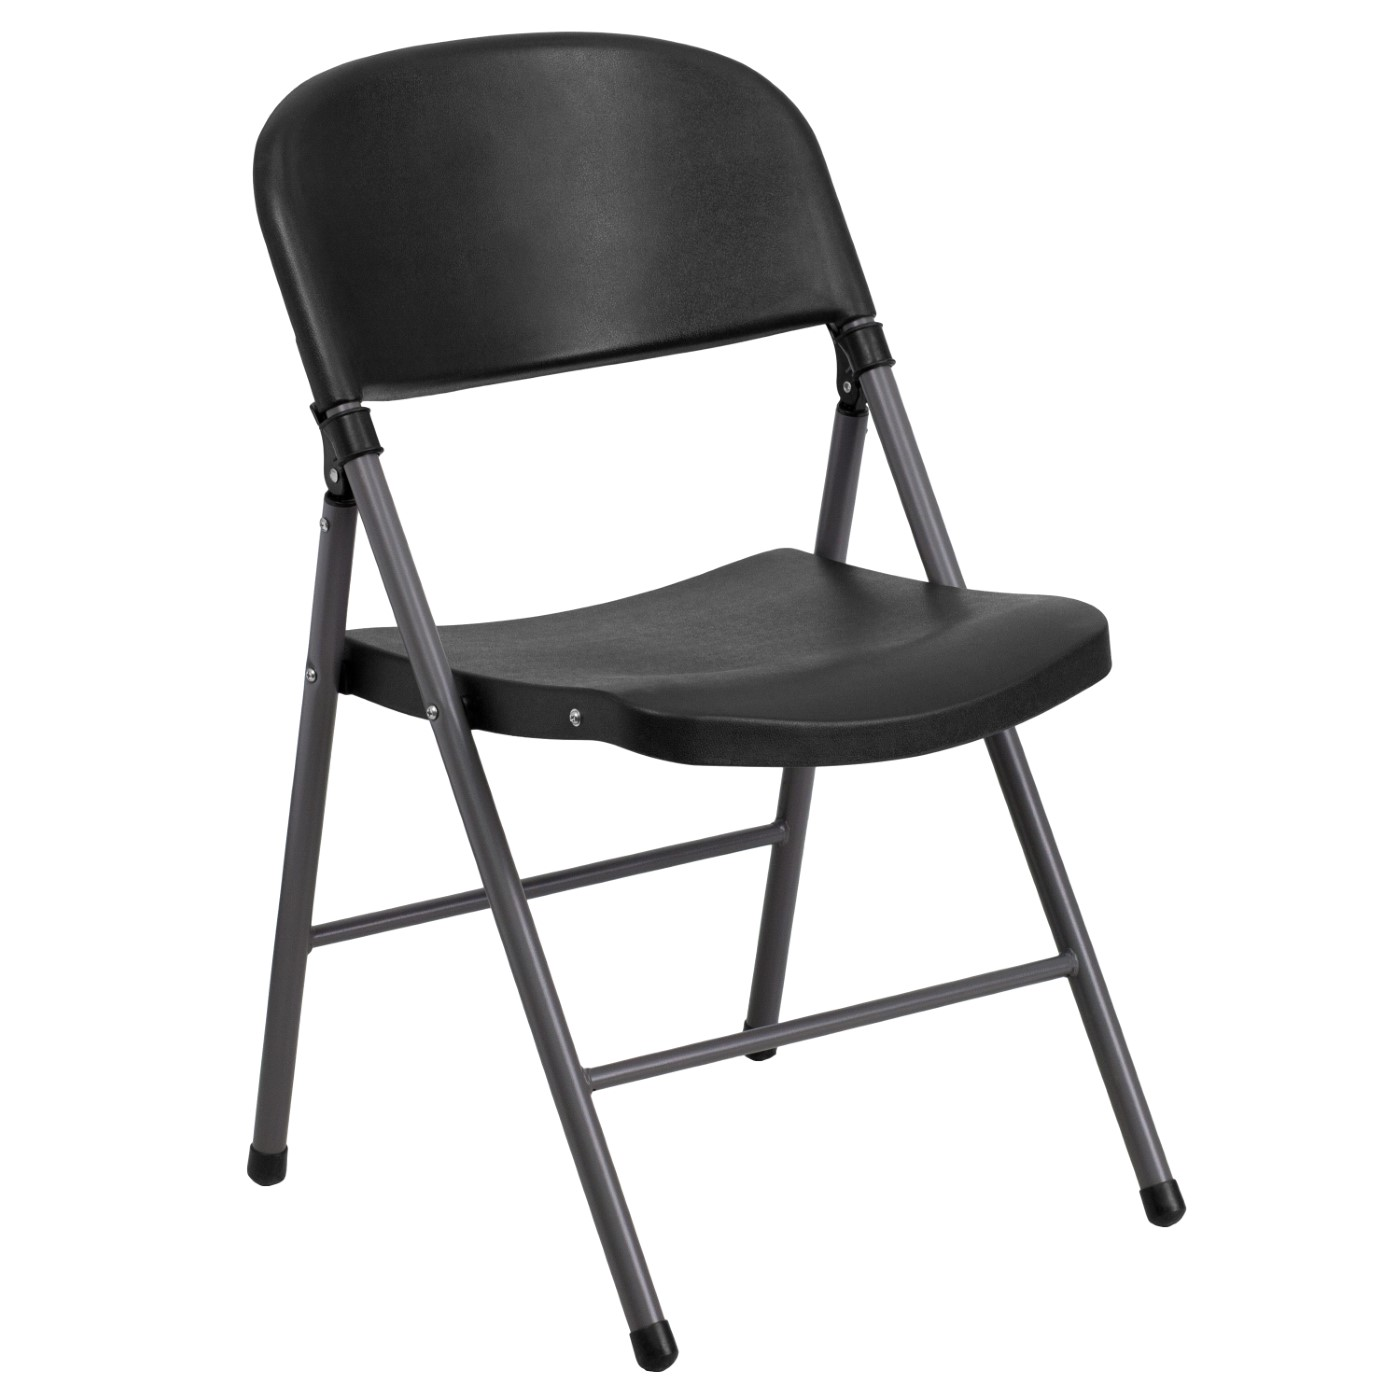 TOUGH ENOUGH Series 330 lb. Capacity Black Plastic Folding Chair with Charcoal Frame